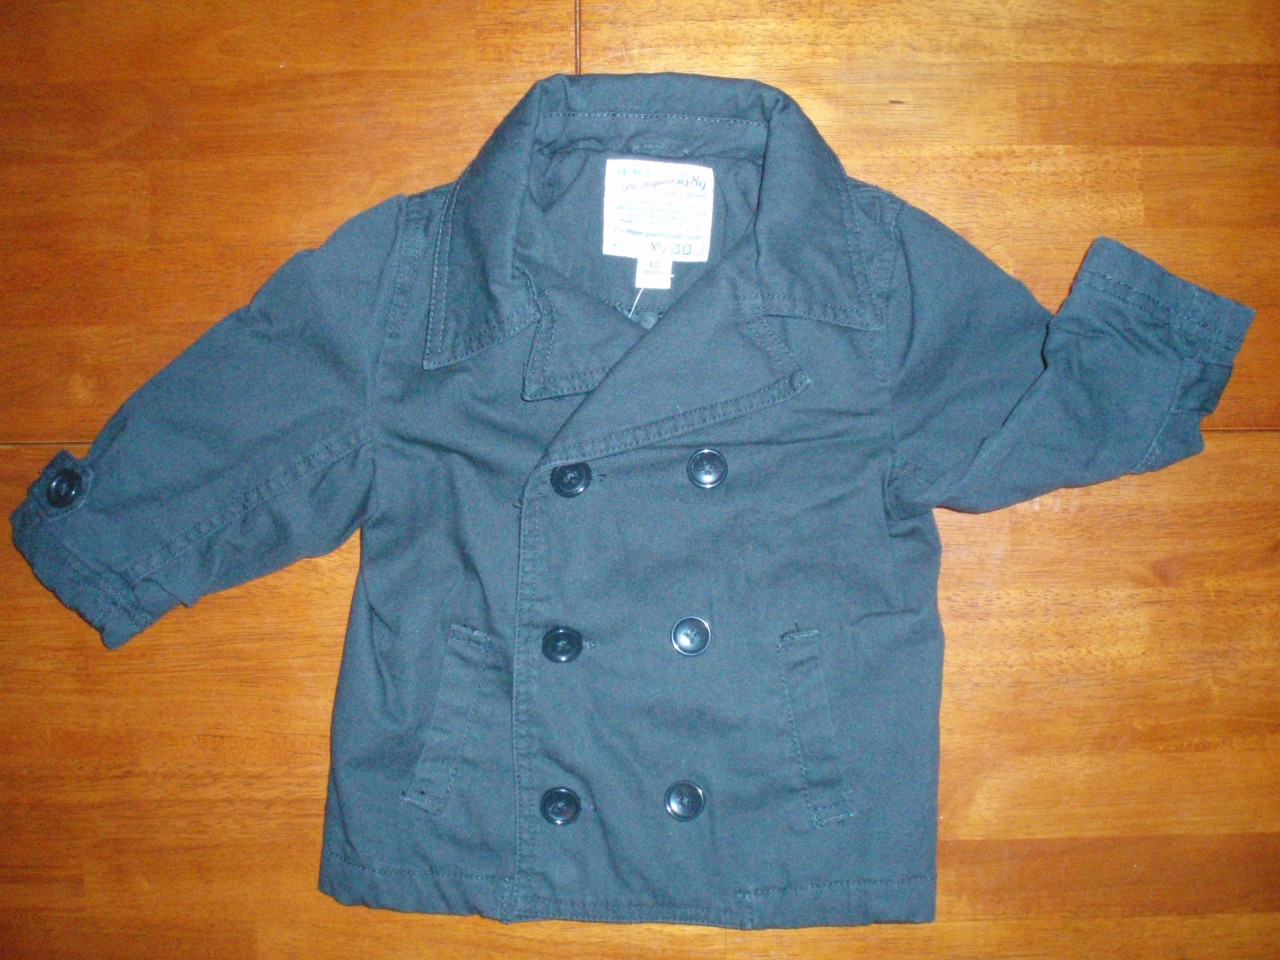 Find Toddler Coats for Girls, Toddler Coats for Boys, Toddler Coats with Hoods and more at Macy's. From polka dots to plaid, there are raincoats, pea coats and more made just for her. Be sure to pay close attention to darling details like gilded buttons and pretty trim. Boys Will Be Boys Toddler Boys Clear. 2T (43) 3T (44) 4T.